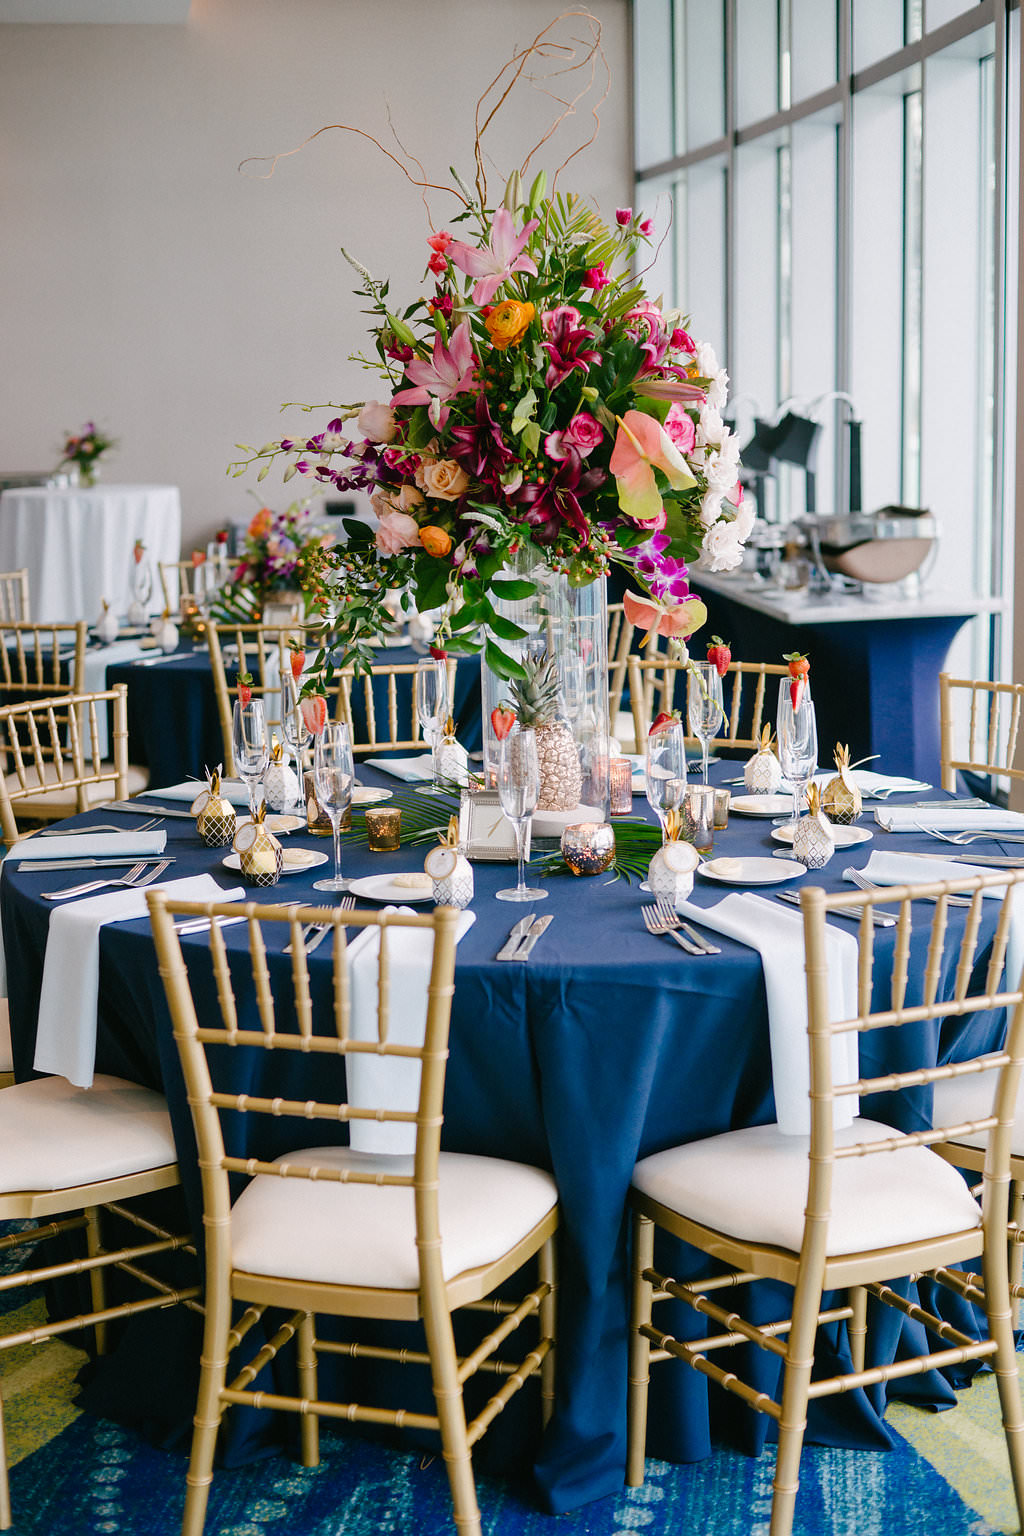 Hotel Ballroom Wedding Reception Decor, Round Tables with Navy Blue Tablecloth, White Linen, Tropical Inspired Floral Centerpiece, Pink, Purple, Burnt Orange, and Greenery Flowers in Glass Vase, Gold Chiavari Chairs and Gold Pineapple | Tampa Bay Photographer Grind and Press Photography | Planner Special Moments Event Planning | Clearwater Beach Venue Opal Sands Resort